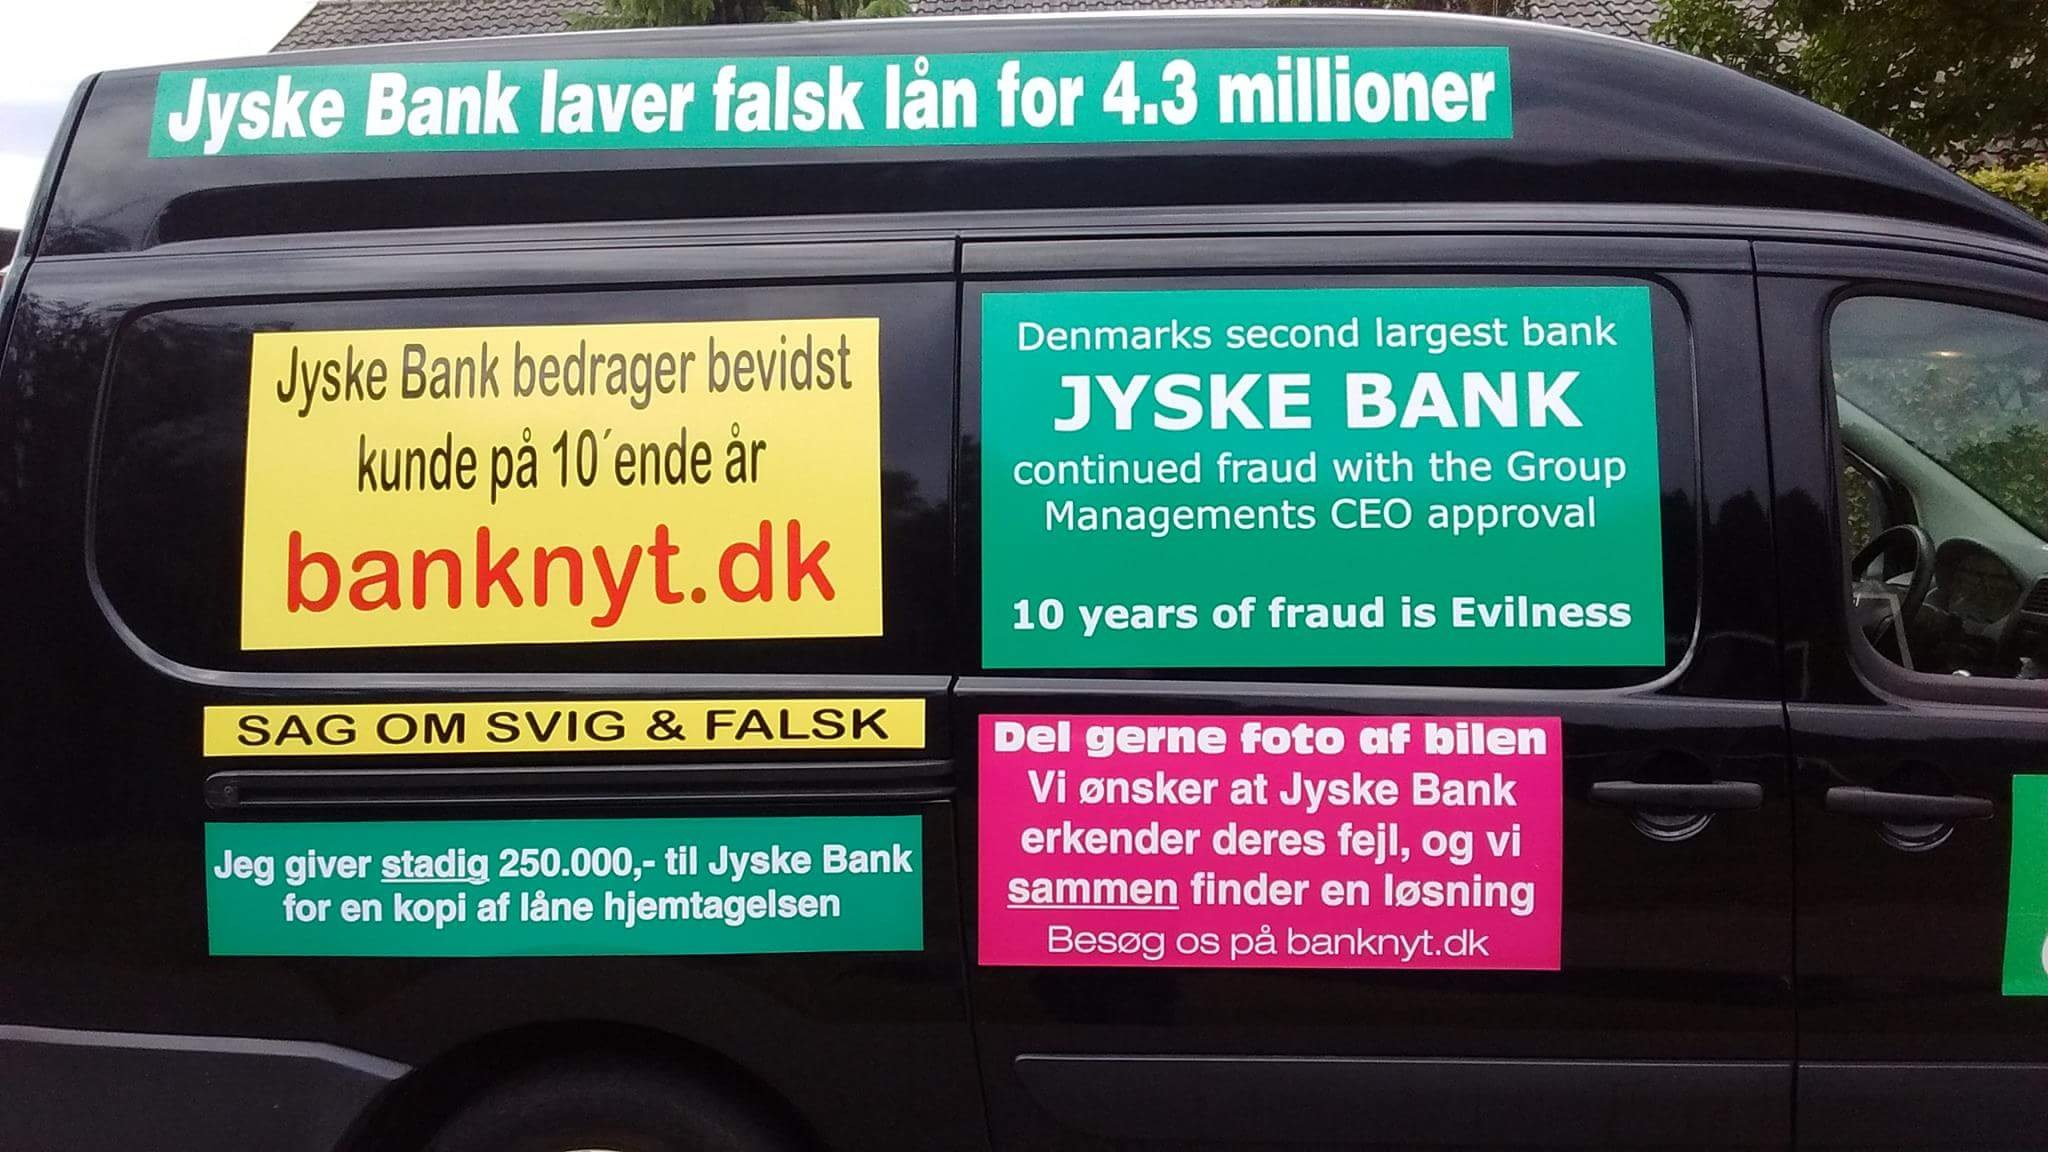 "Final Procedure page 1-52. date 28-10-2019. Danish bank Jyske Bank in major fraud case, plaintiff discovers that Jyske bank has paid their lawyer Lundgren's return commission, not to present the client's case to court. ""Bribery"" presented in Case BS-402-2015"